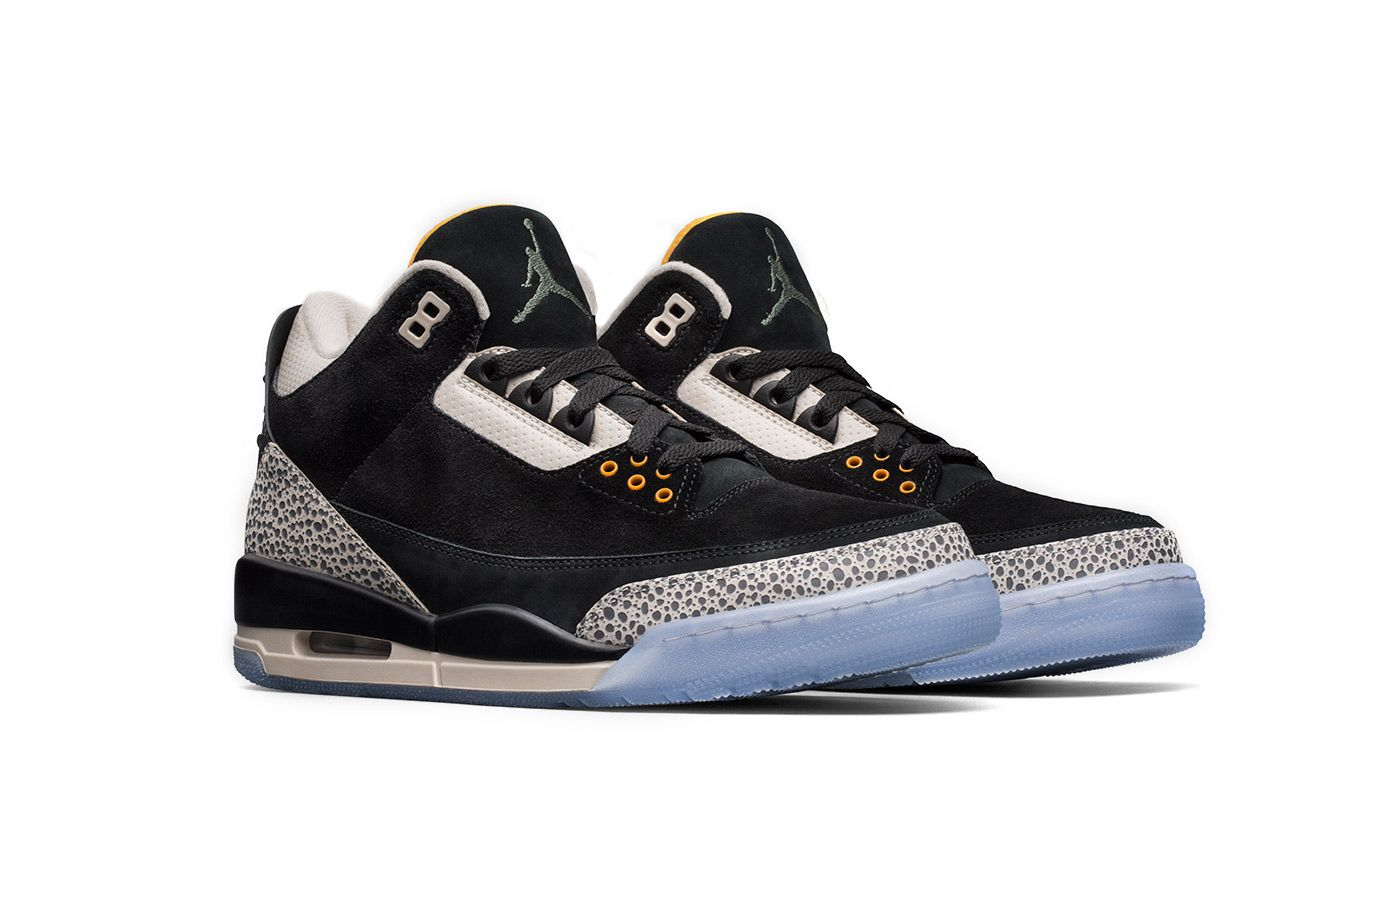 separation shoes 5eddc bbc3d The atmos Air Max 1 x Air Jordan 3 Pack Has Officially Been Revealed